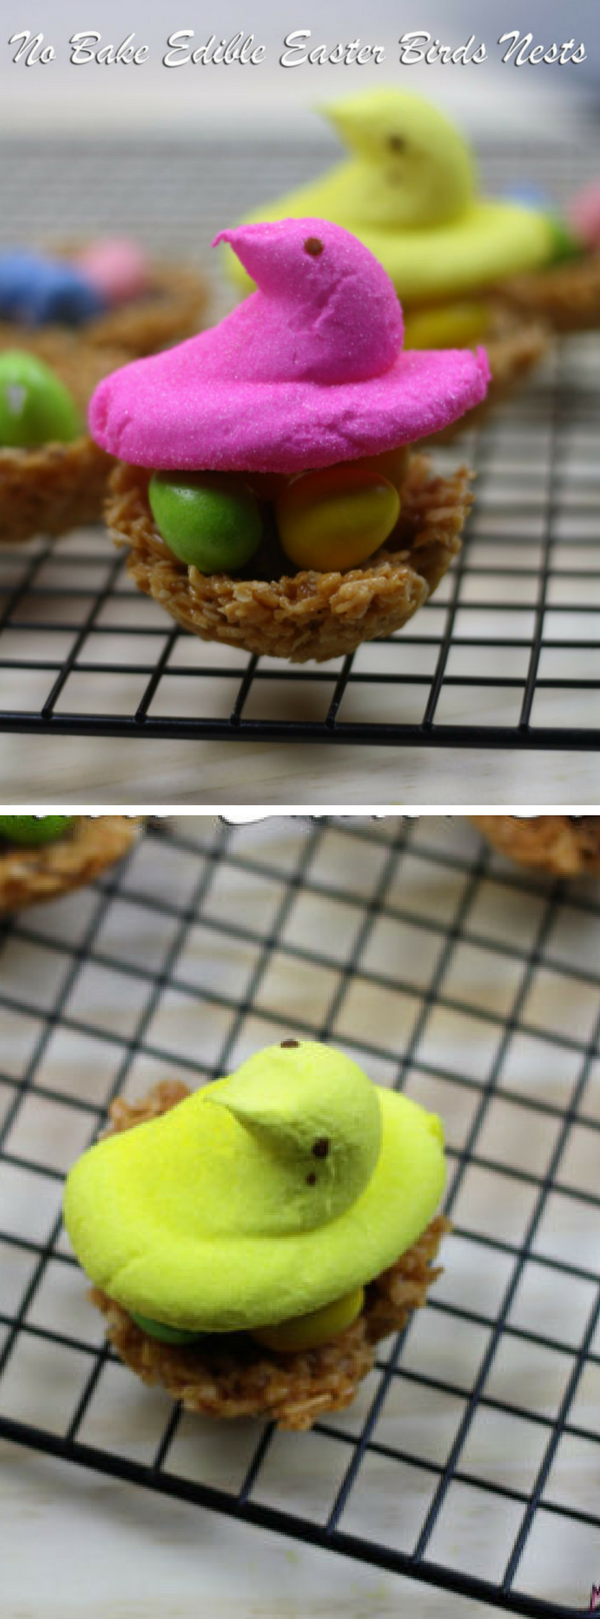 No Bake Edible Easter Birds Nests